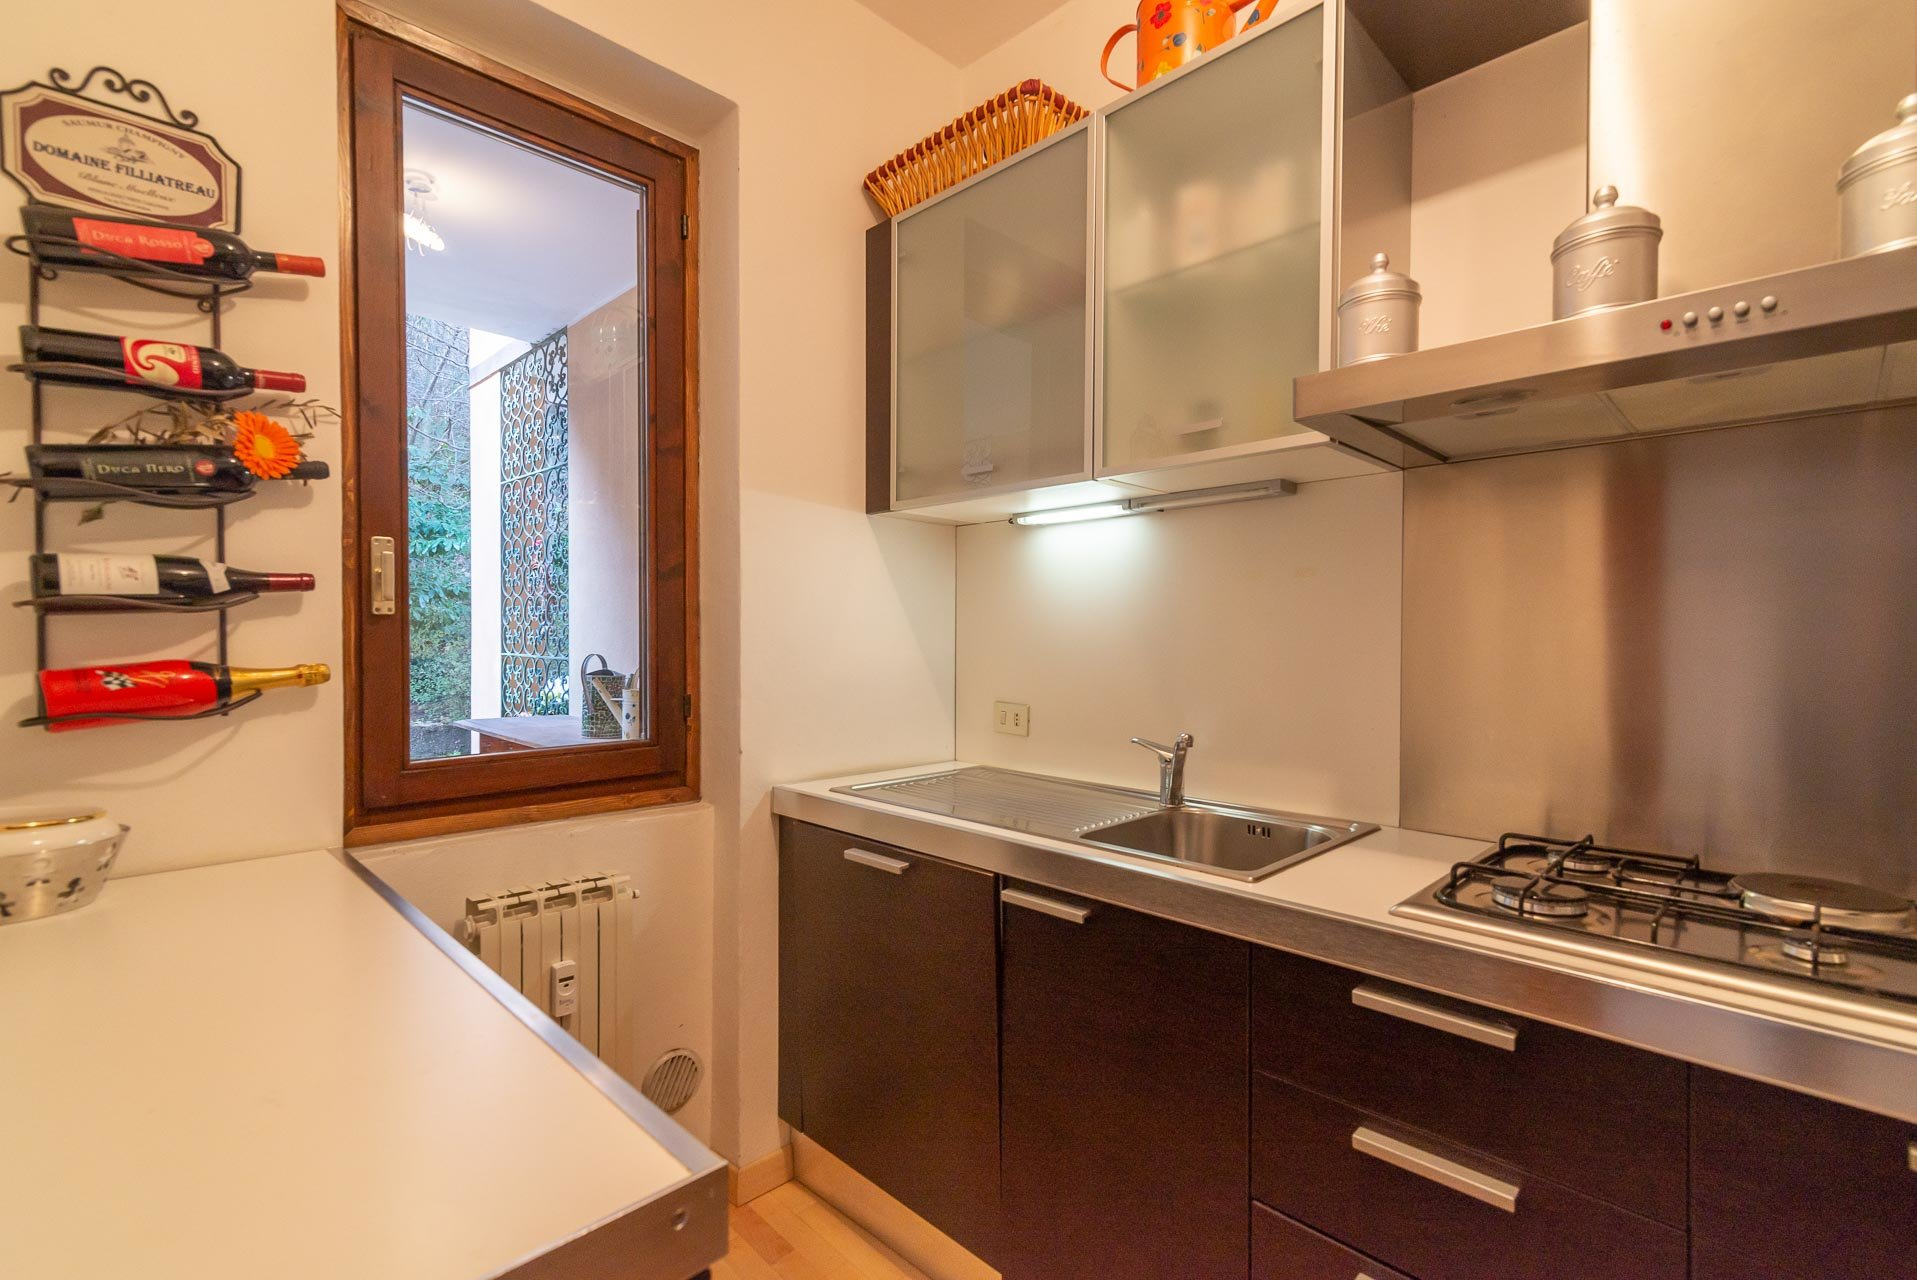 Apartment for sale in Stresa in a residence - kitchen